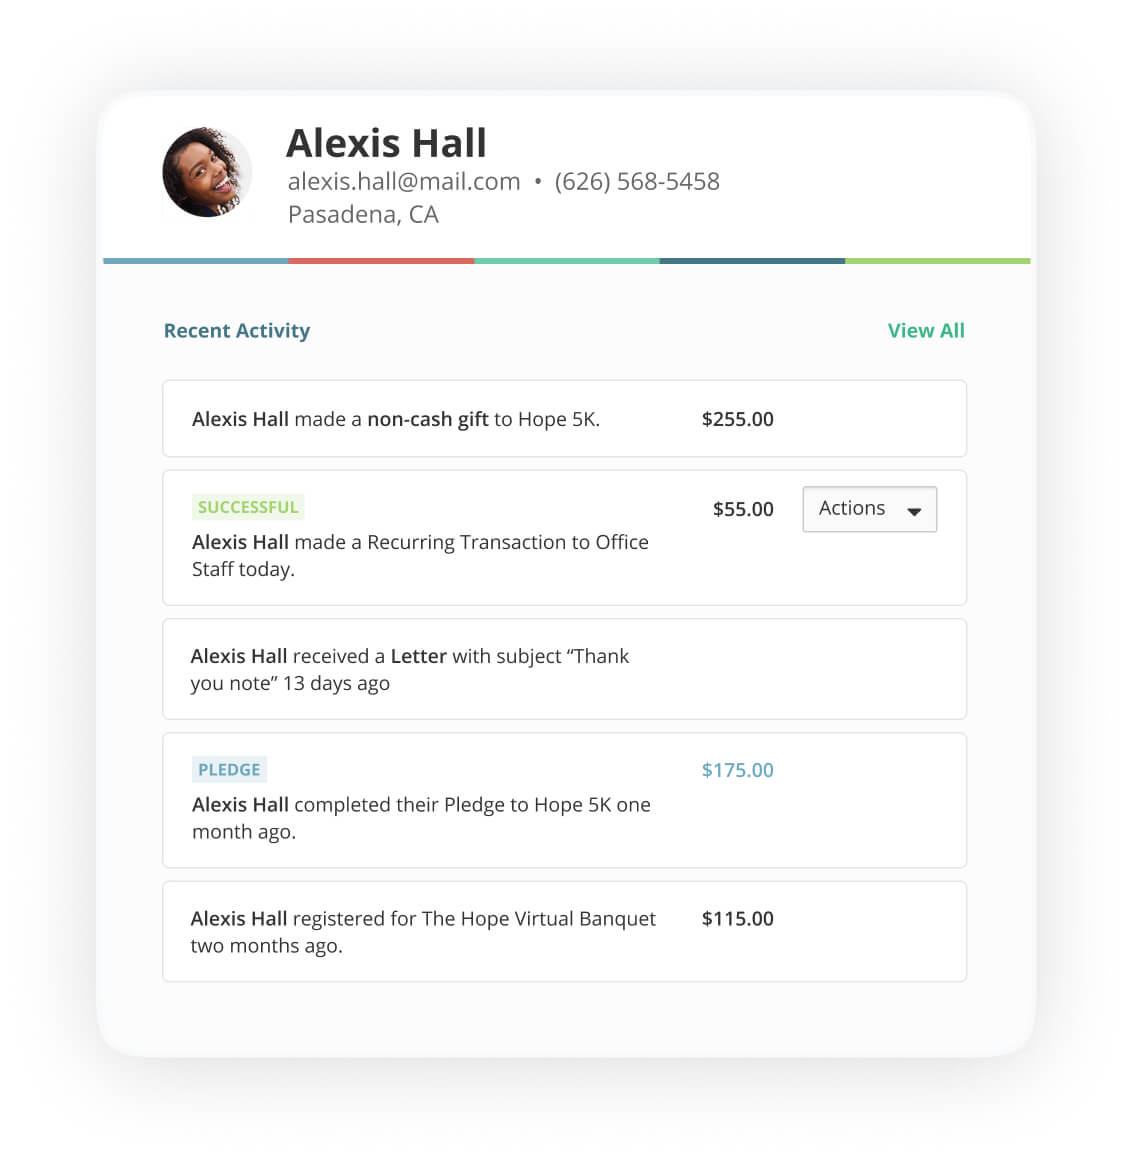 Contact profile of Alexis Hall, showing multiple online donations listed above and below her in-kind donation